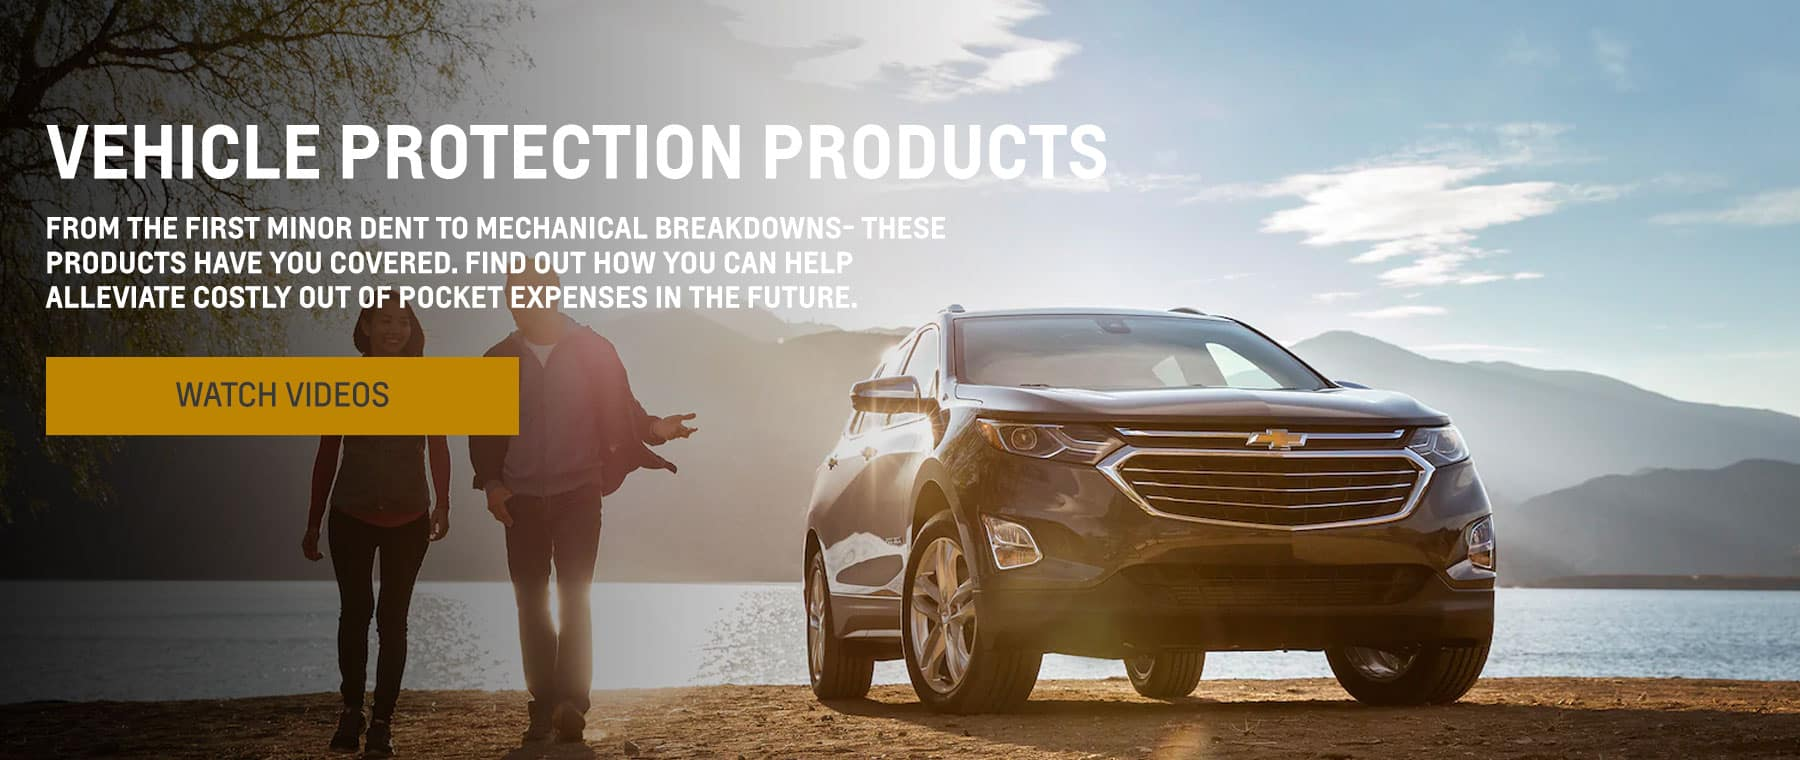 Vehicle Protection Products